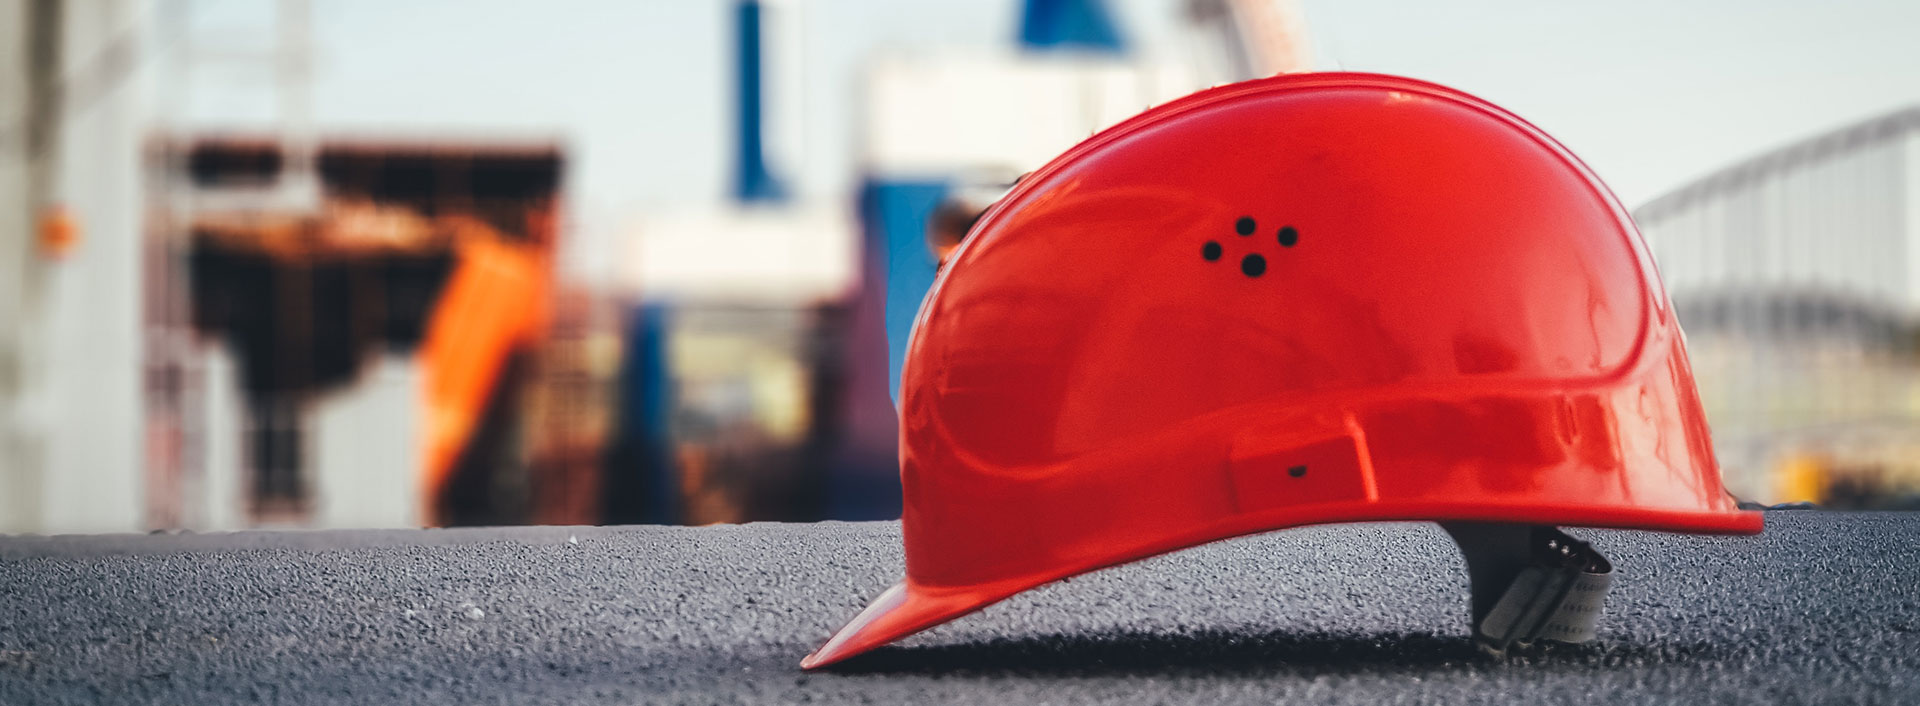 Photo of a hard hat laid down on an industrial surface.